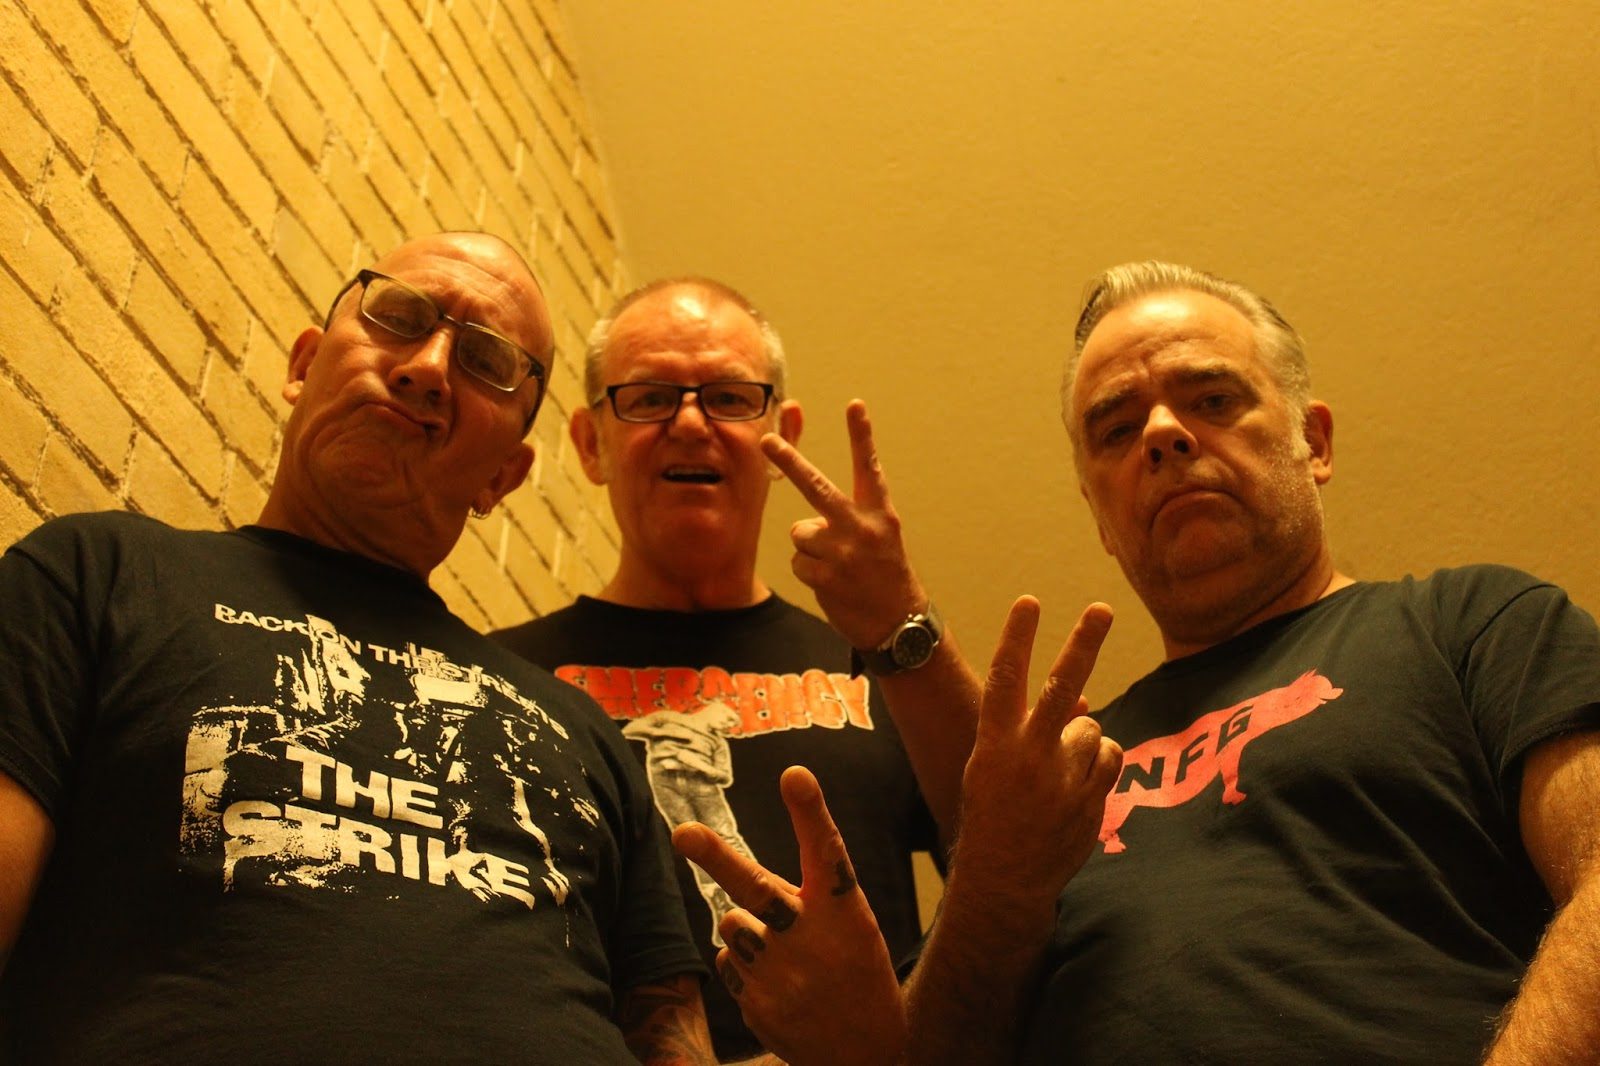 The Strike are an oi band, originally from Cannich, which is the Highlands  of Scotland some 30 clicks outside of Inverness. Significant to the punk  scene ...